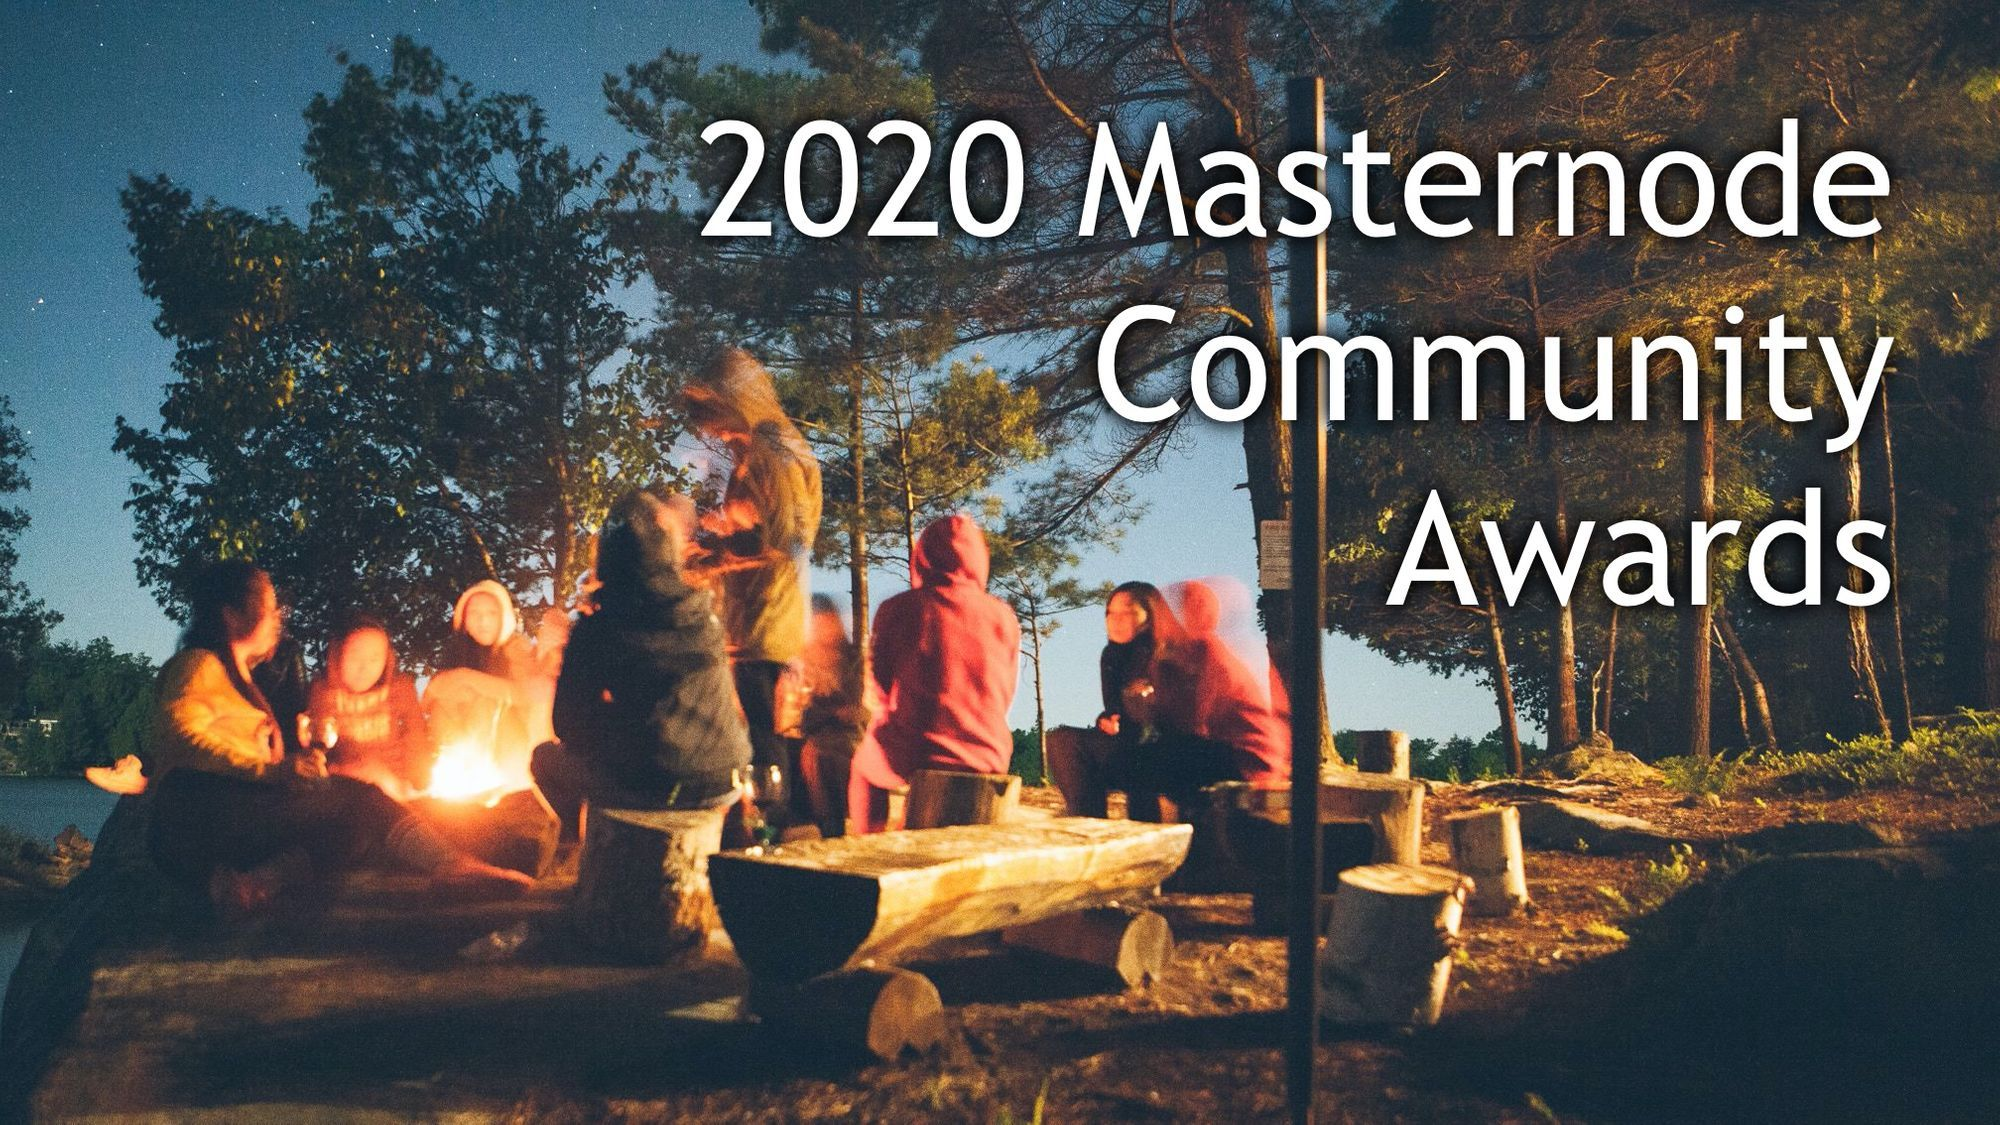 2020 Masternode Community Awards: Best Masternode Community